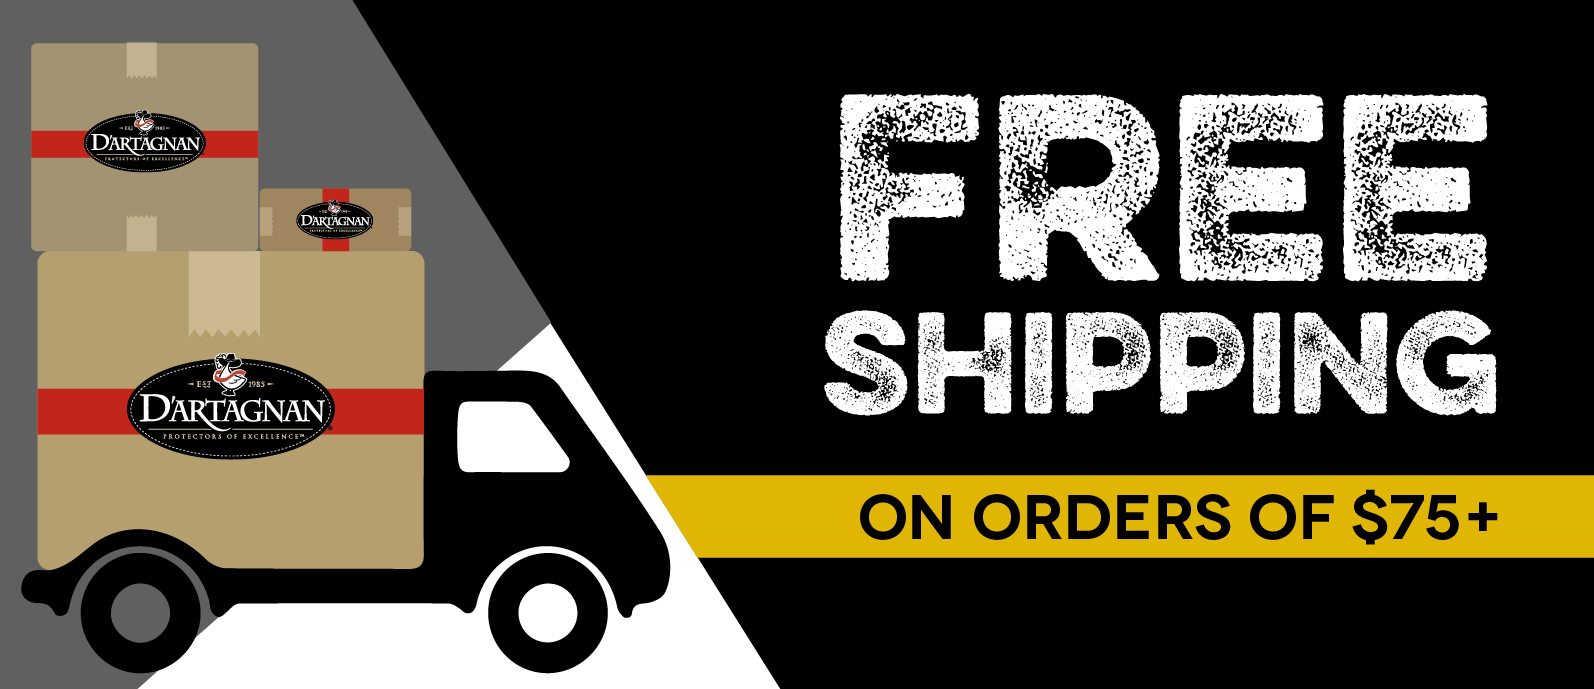 Free Shipping Event on orders $75+